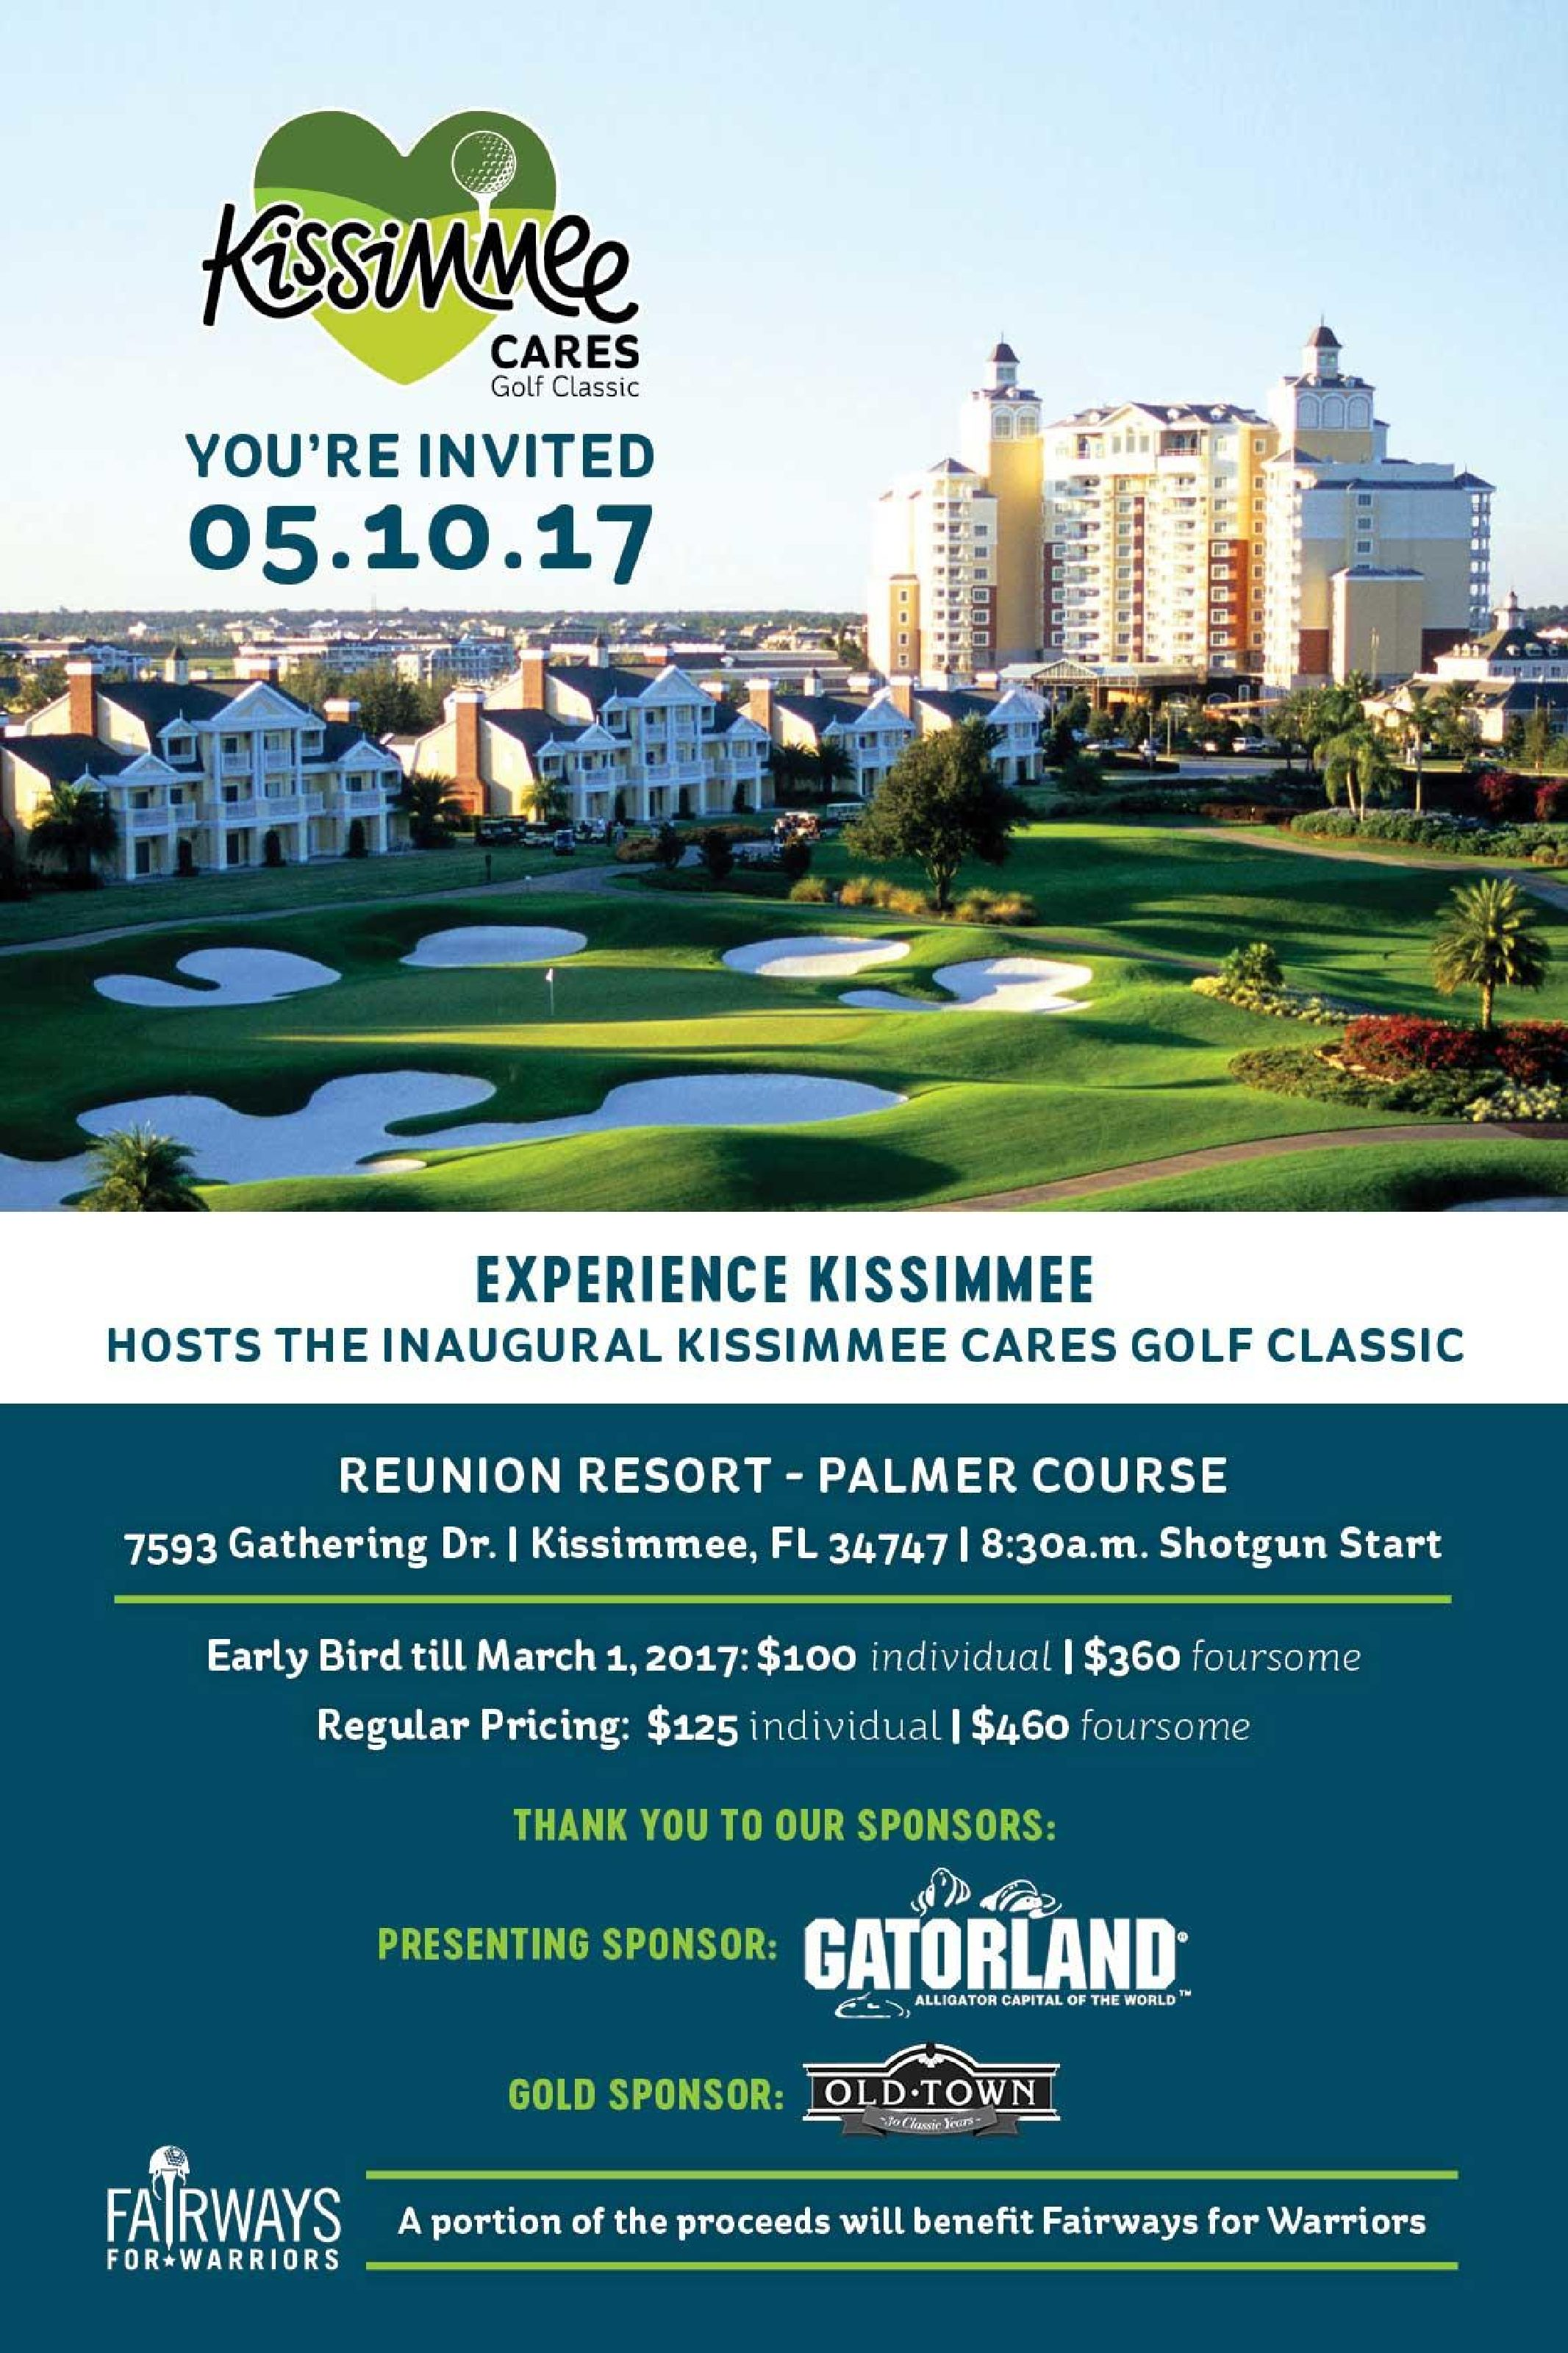 Kissimmee Cares Golf Classic to Benefit Fairways for Warriors